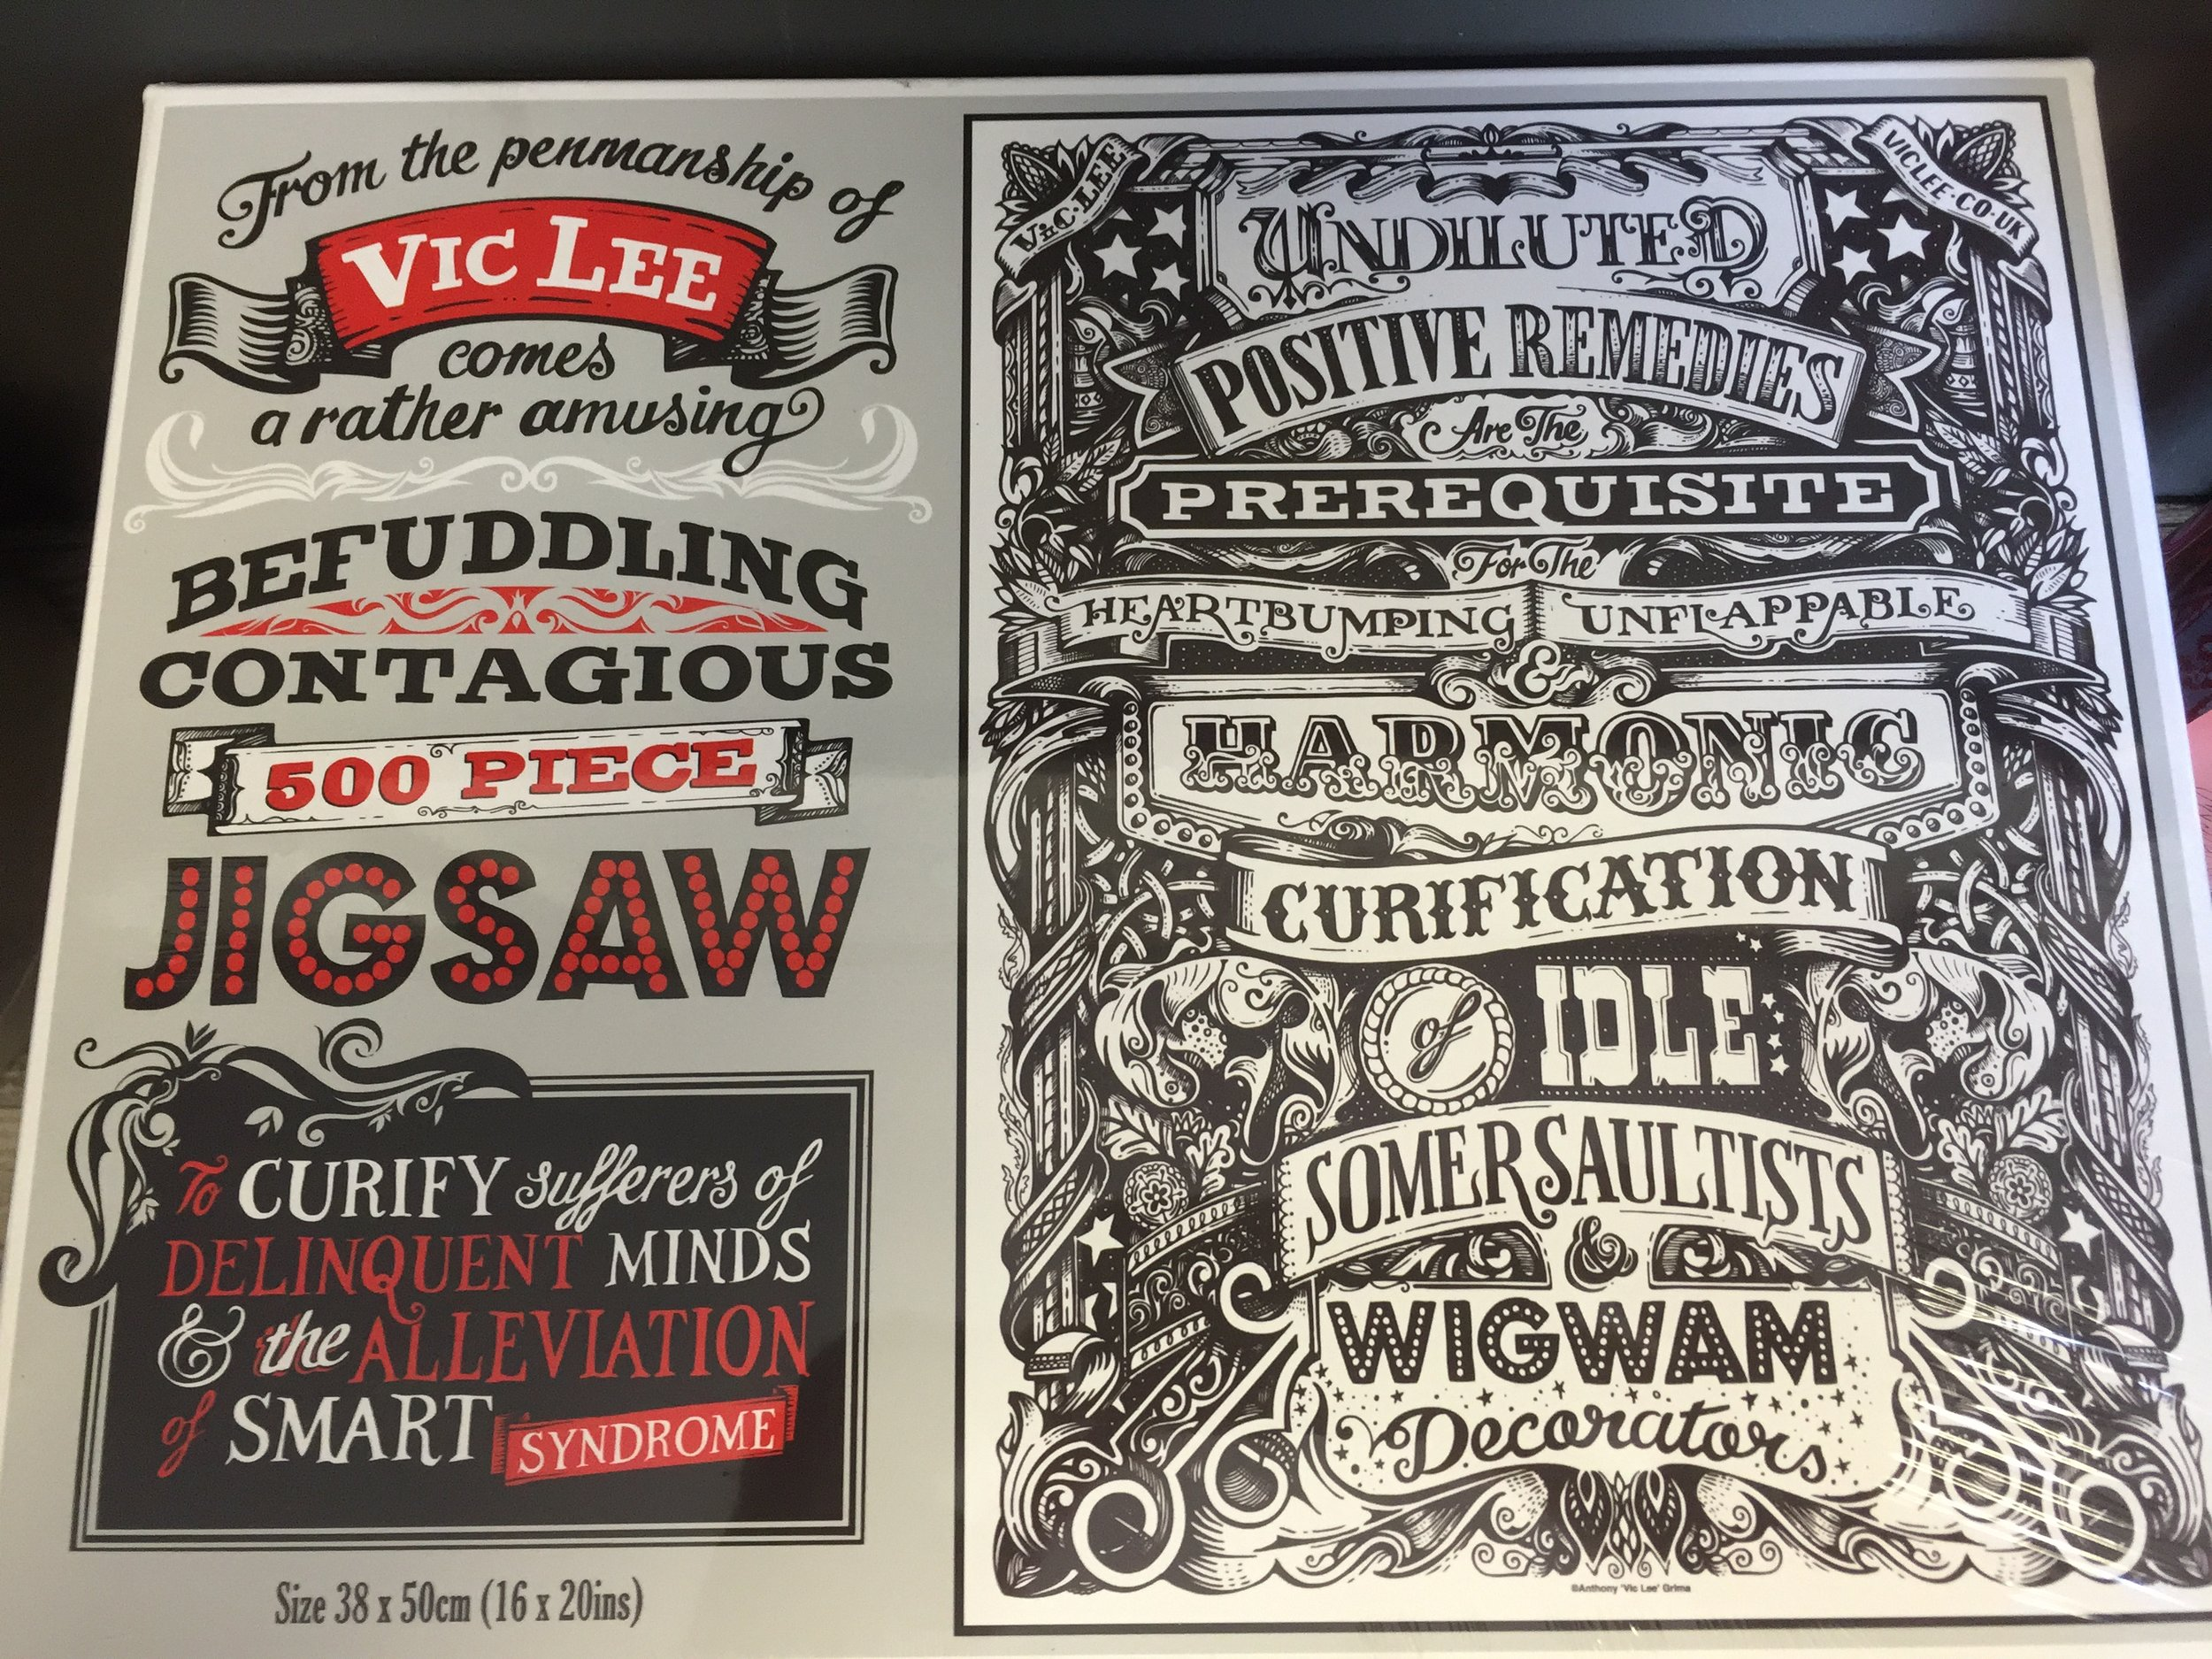 Vic Lee jigsaw